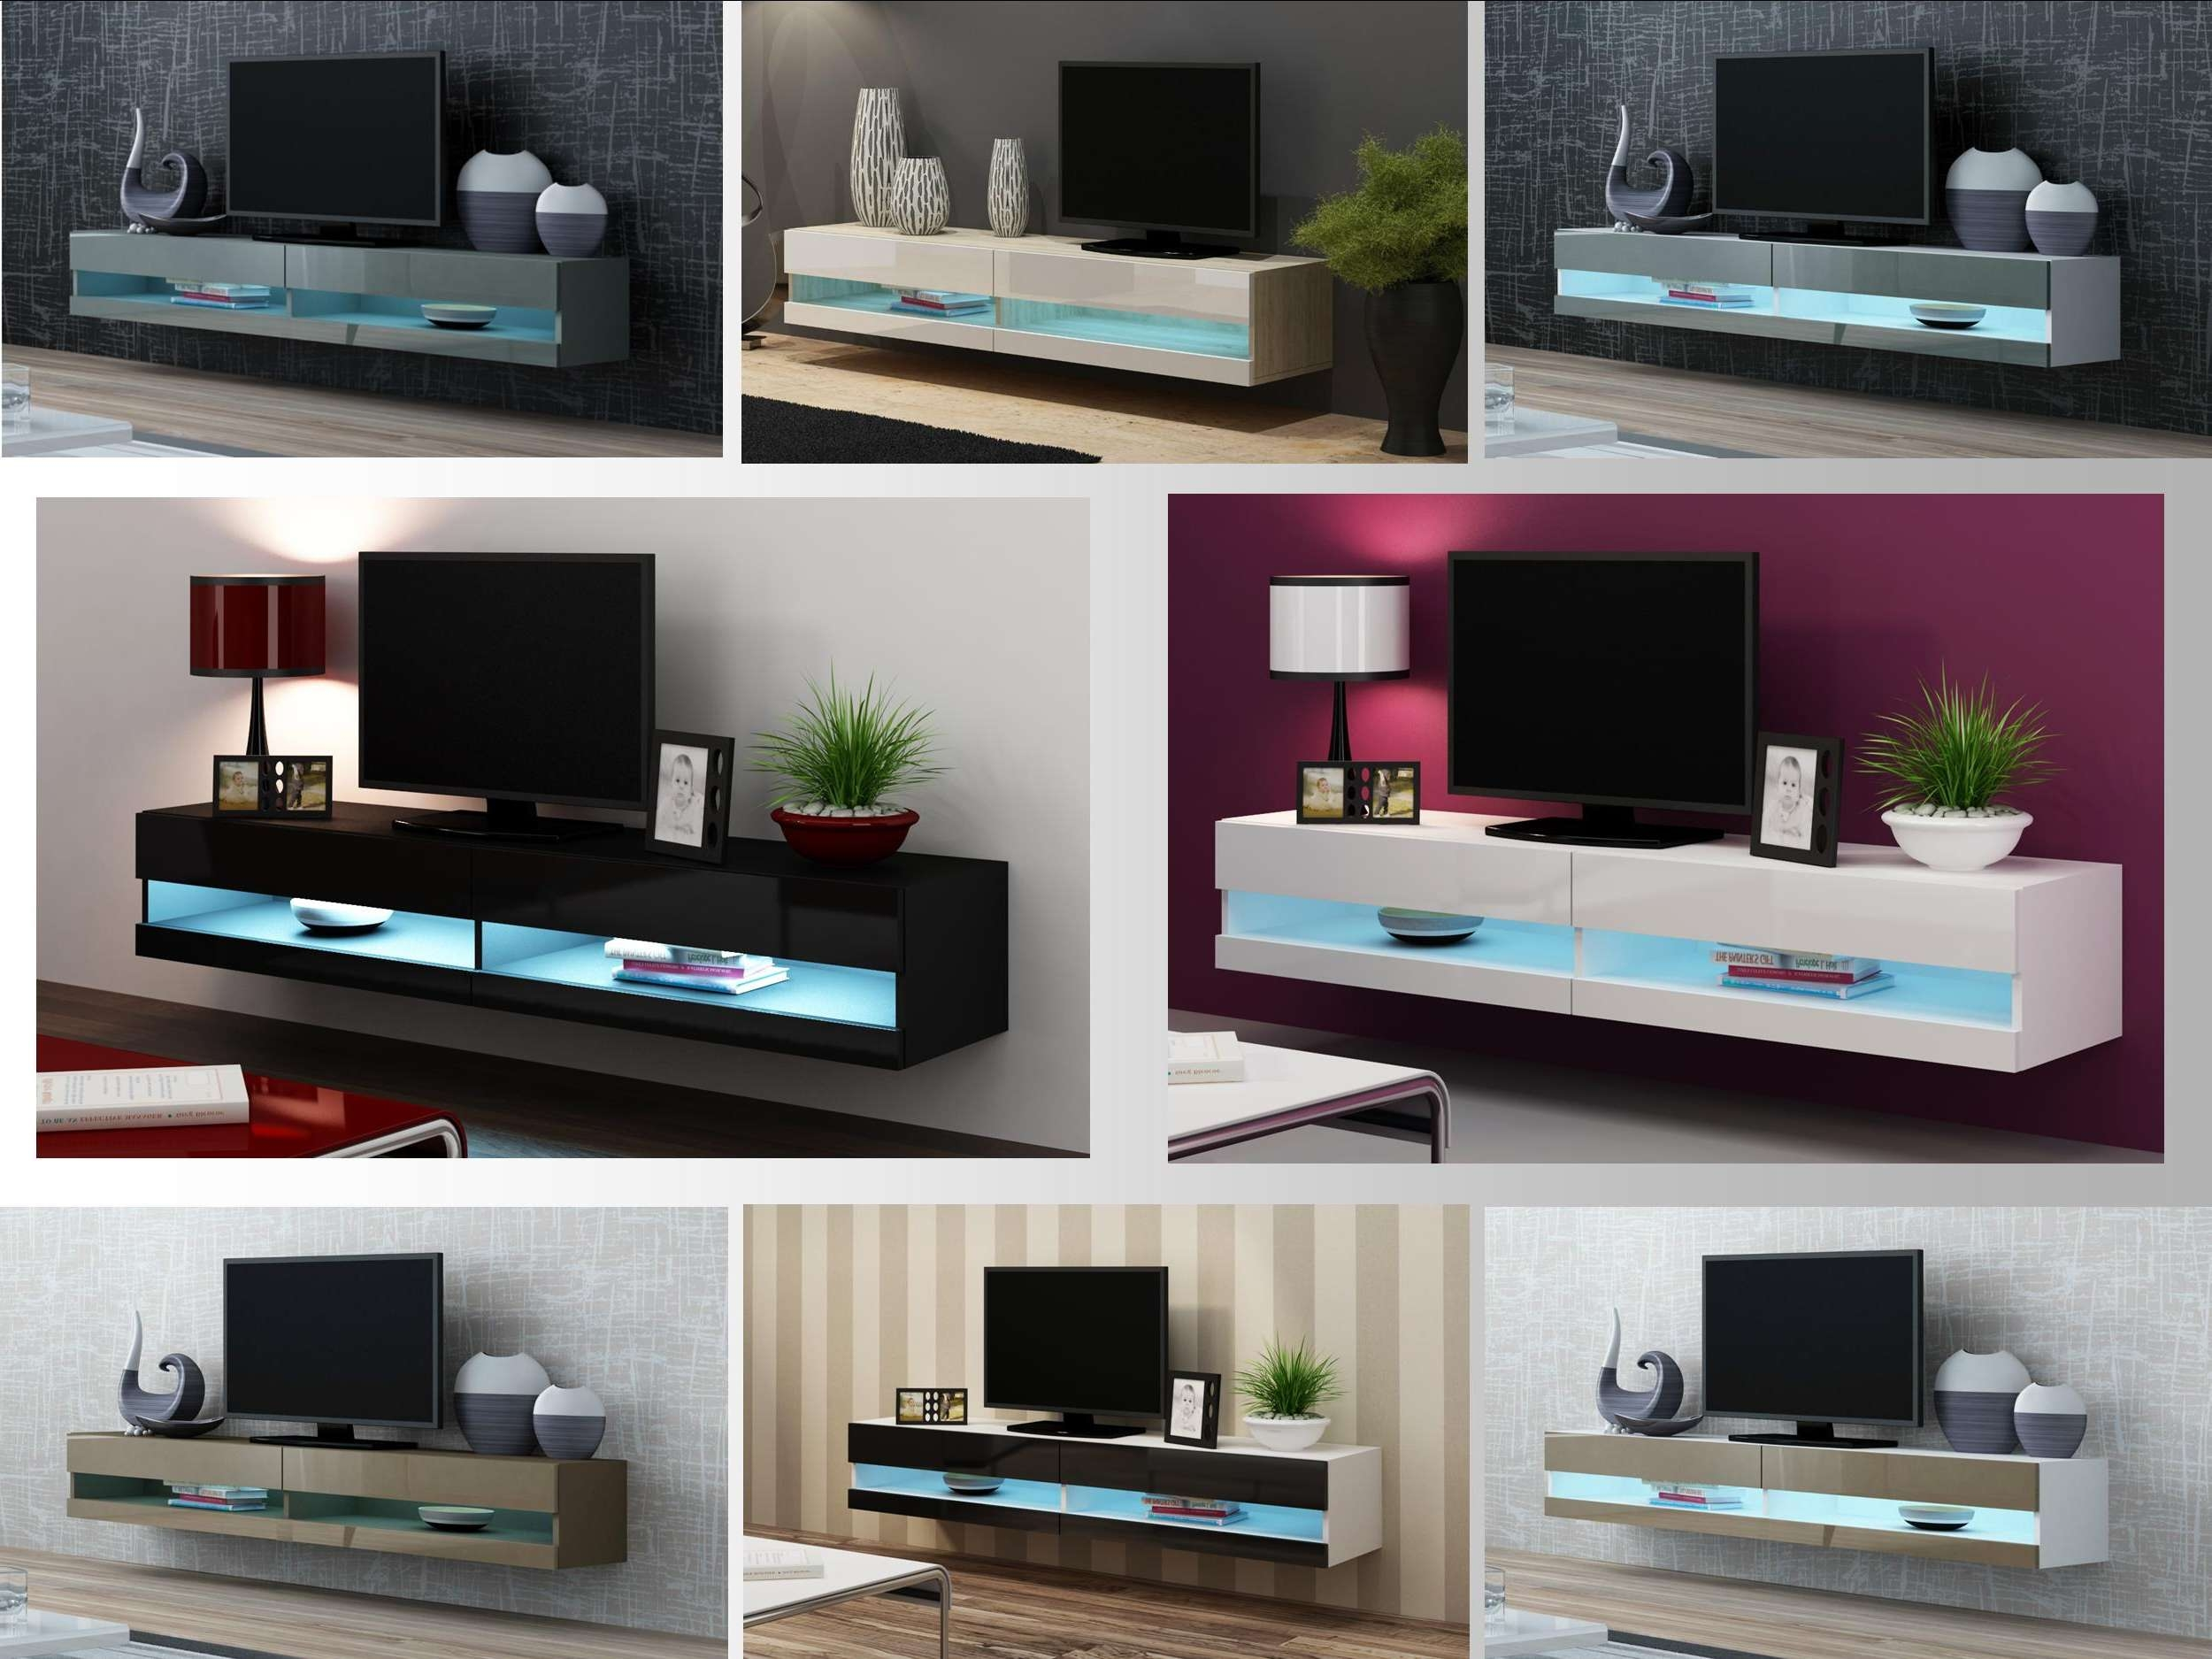 High Gloss Tv Stand Cabinet With Led Lights | Entertainment With Regard To Tv Stands Wall Units (View 10 of 15)